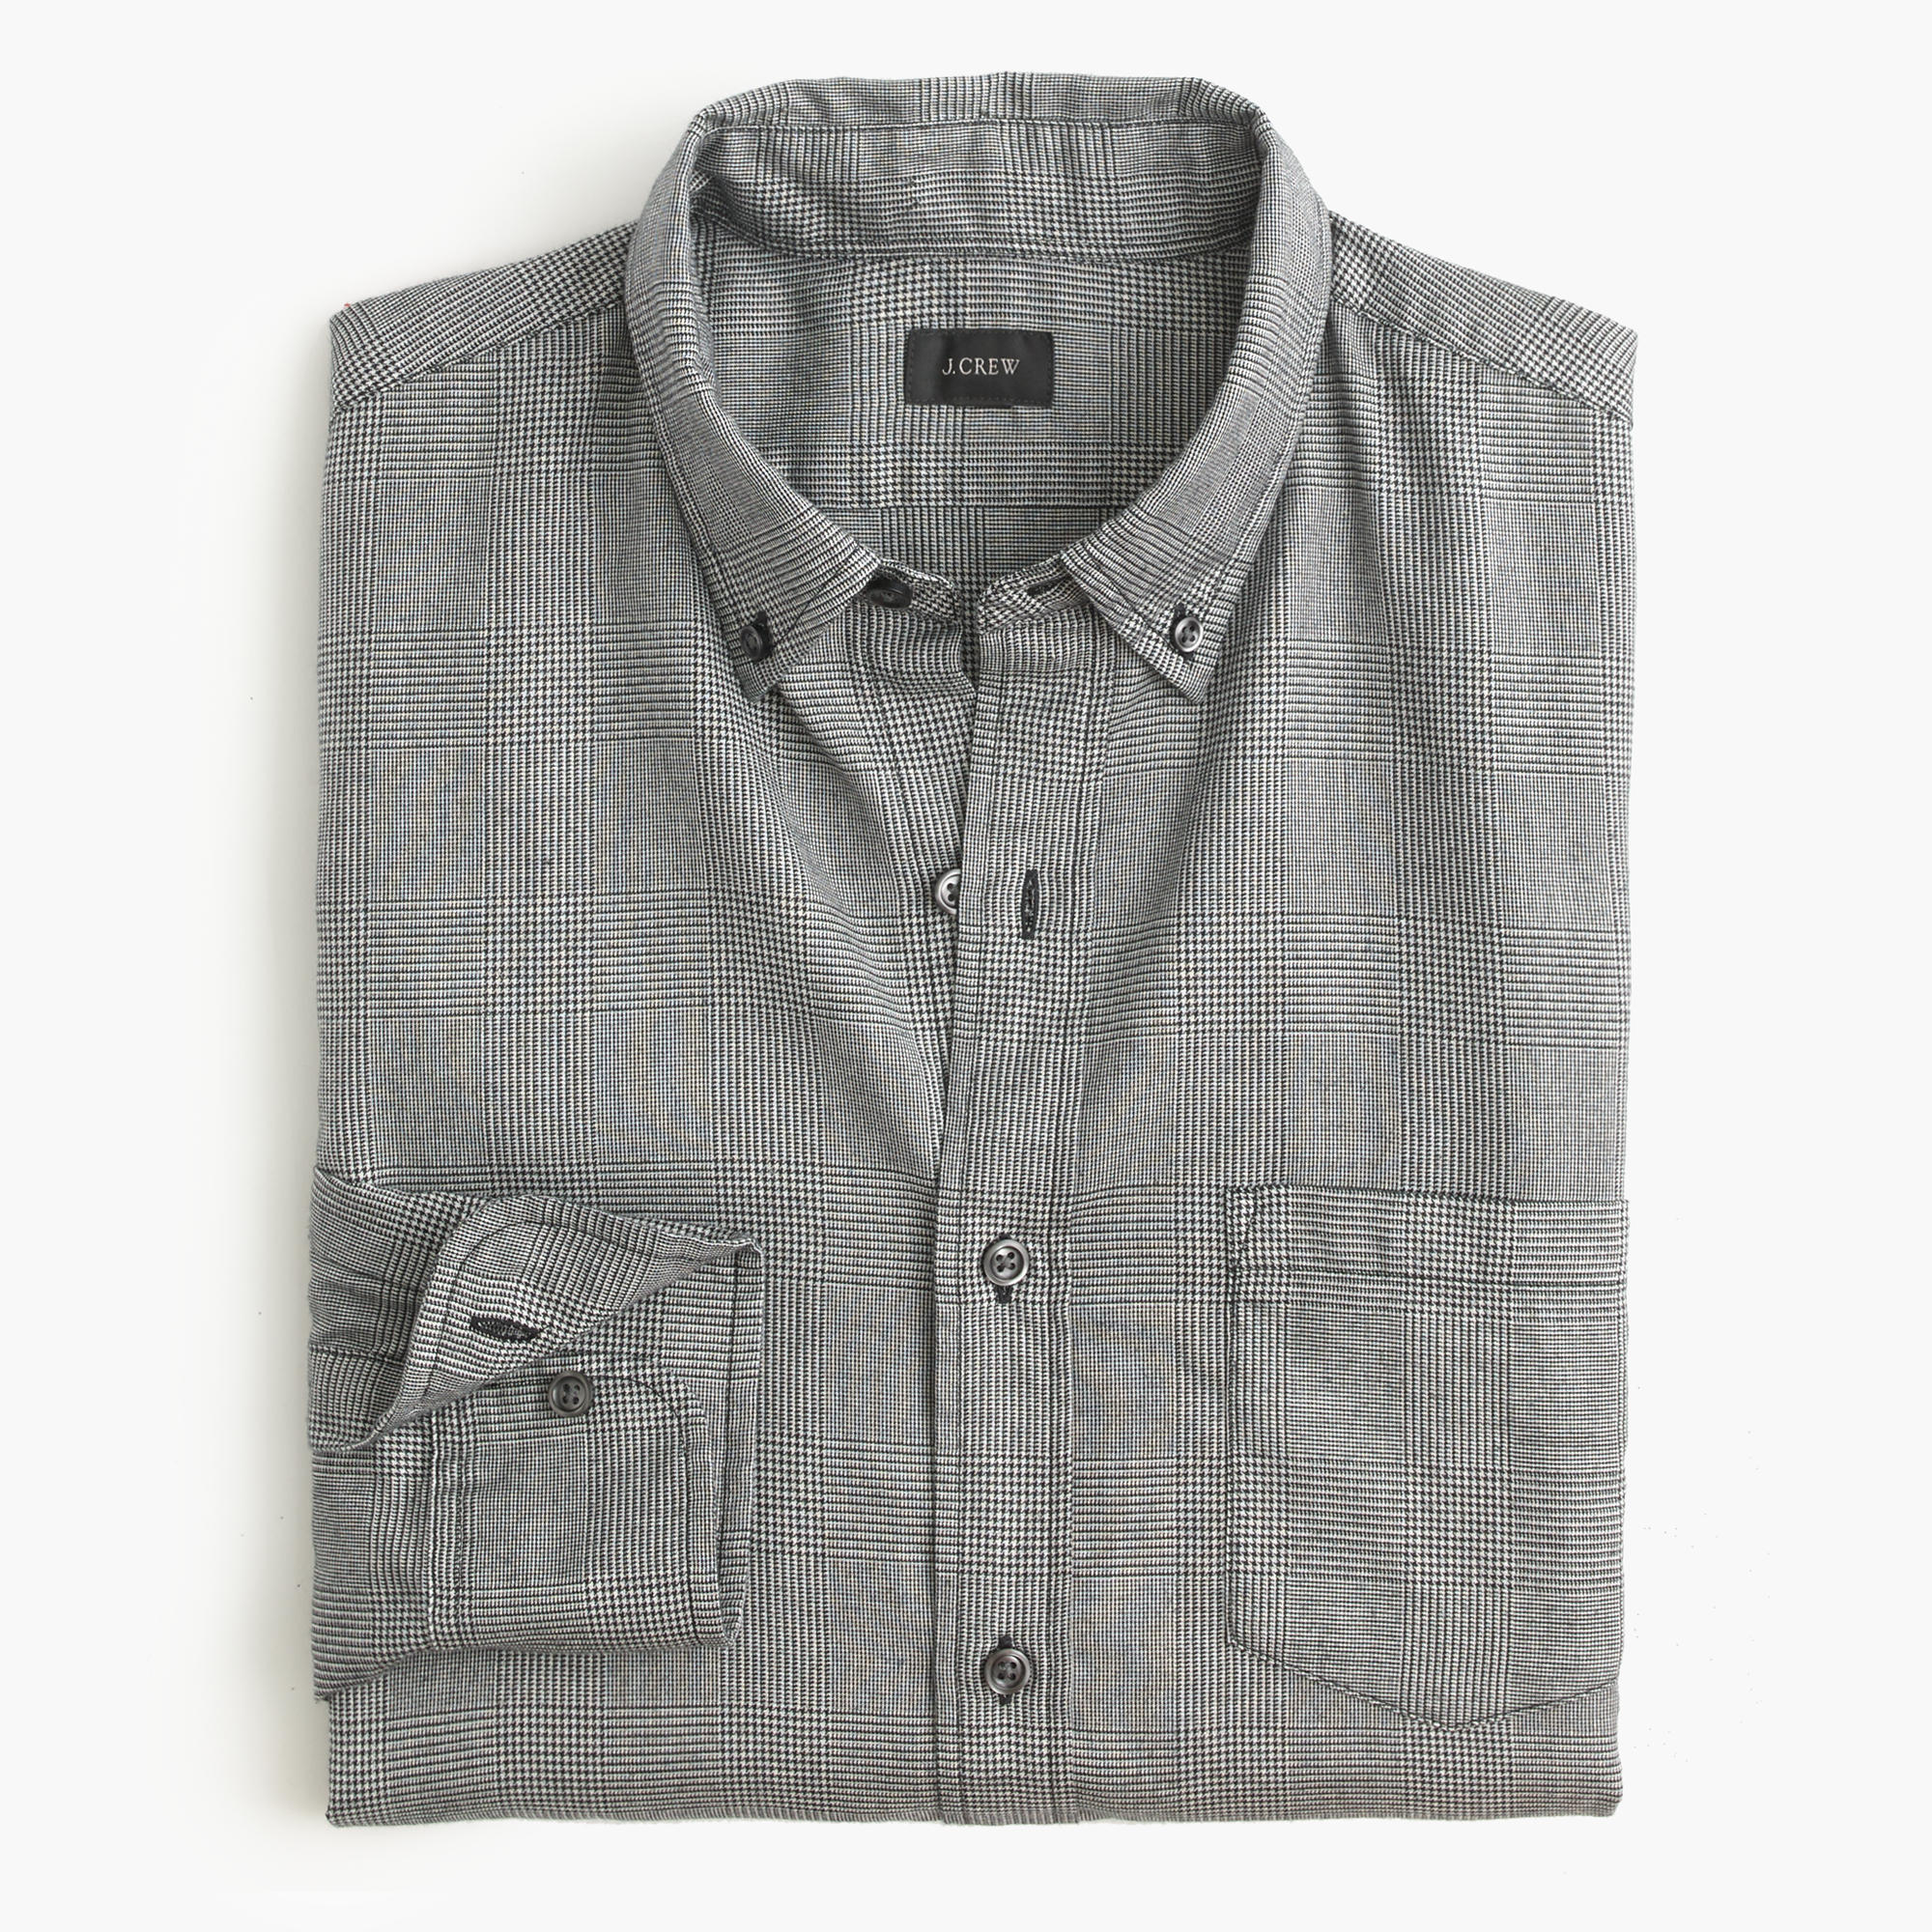 Brushed Twill Shirt In Glen Plaid J Crew